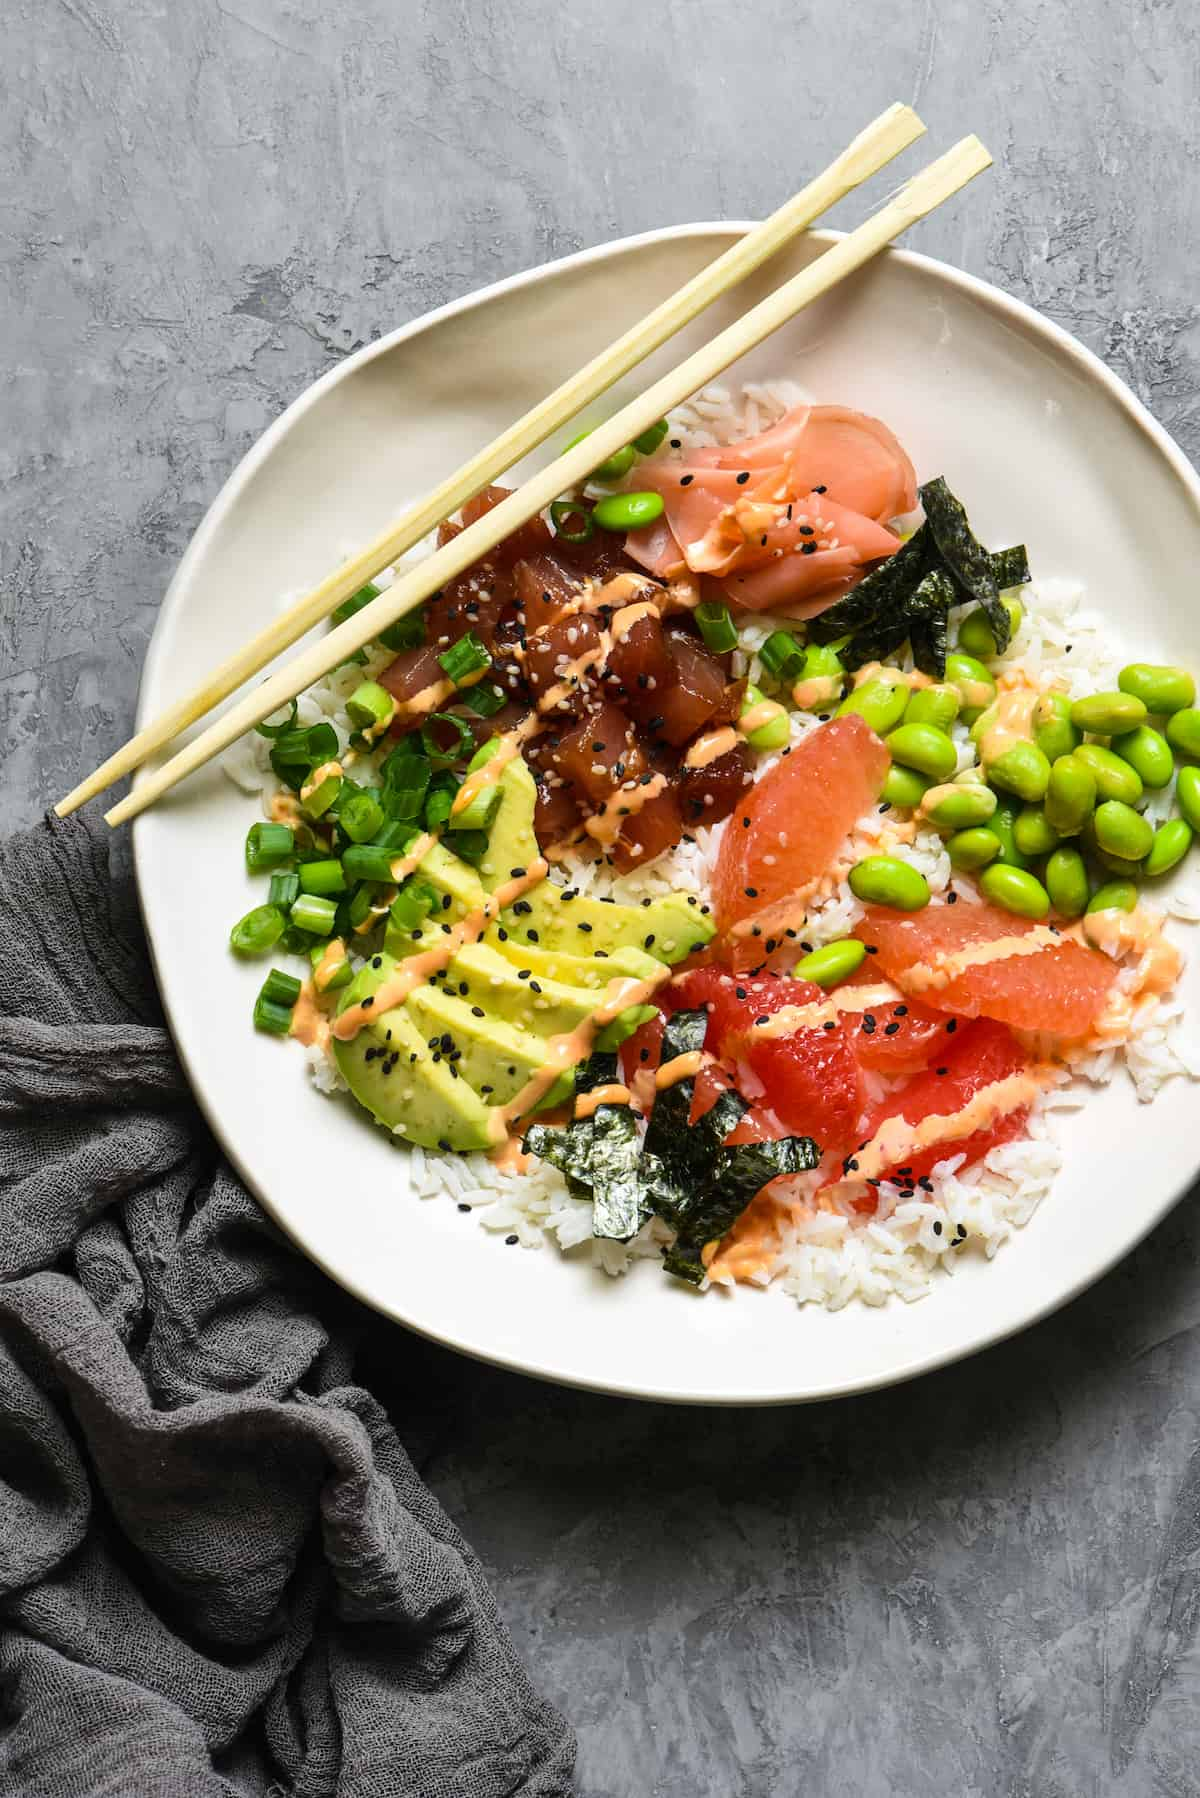 Grapefruit & Ahi Tuna Poke Bowl + 11 Grapefruit Recipes to Brighten Your Winter - Bring some happy flavor to a cold day with an appetizer, cocktail, breakfast, salad, lunch or dinner celebrating juicy, sweet grapefruit! | foxeslovelemons.com